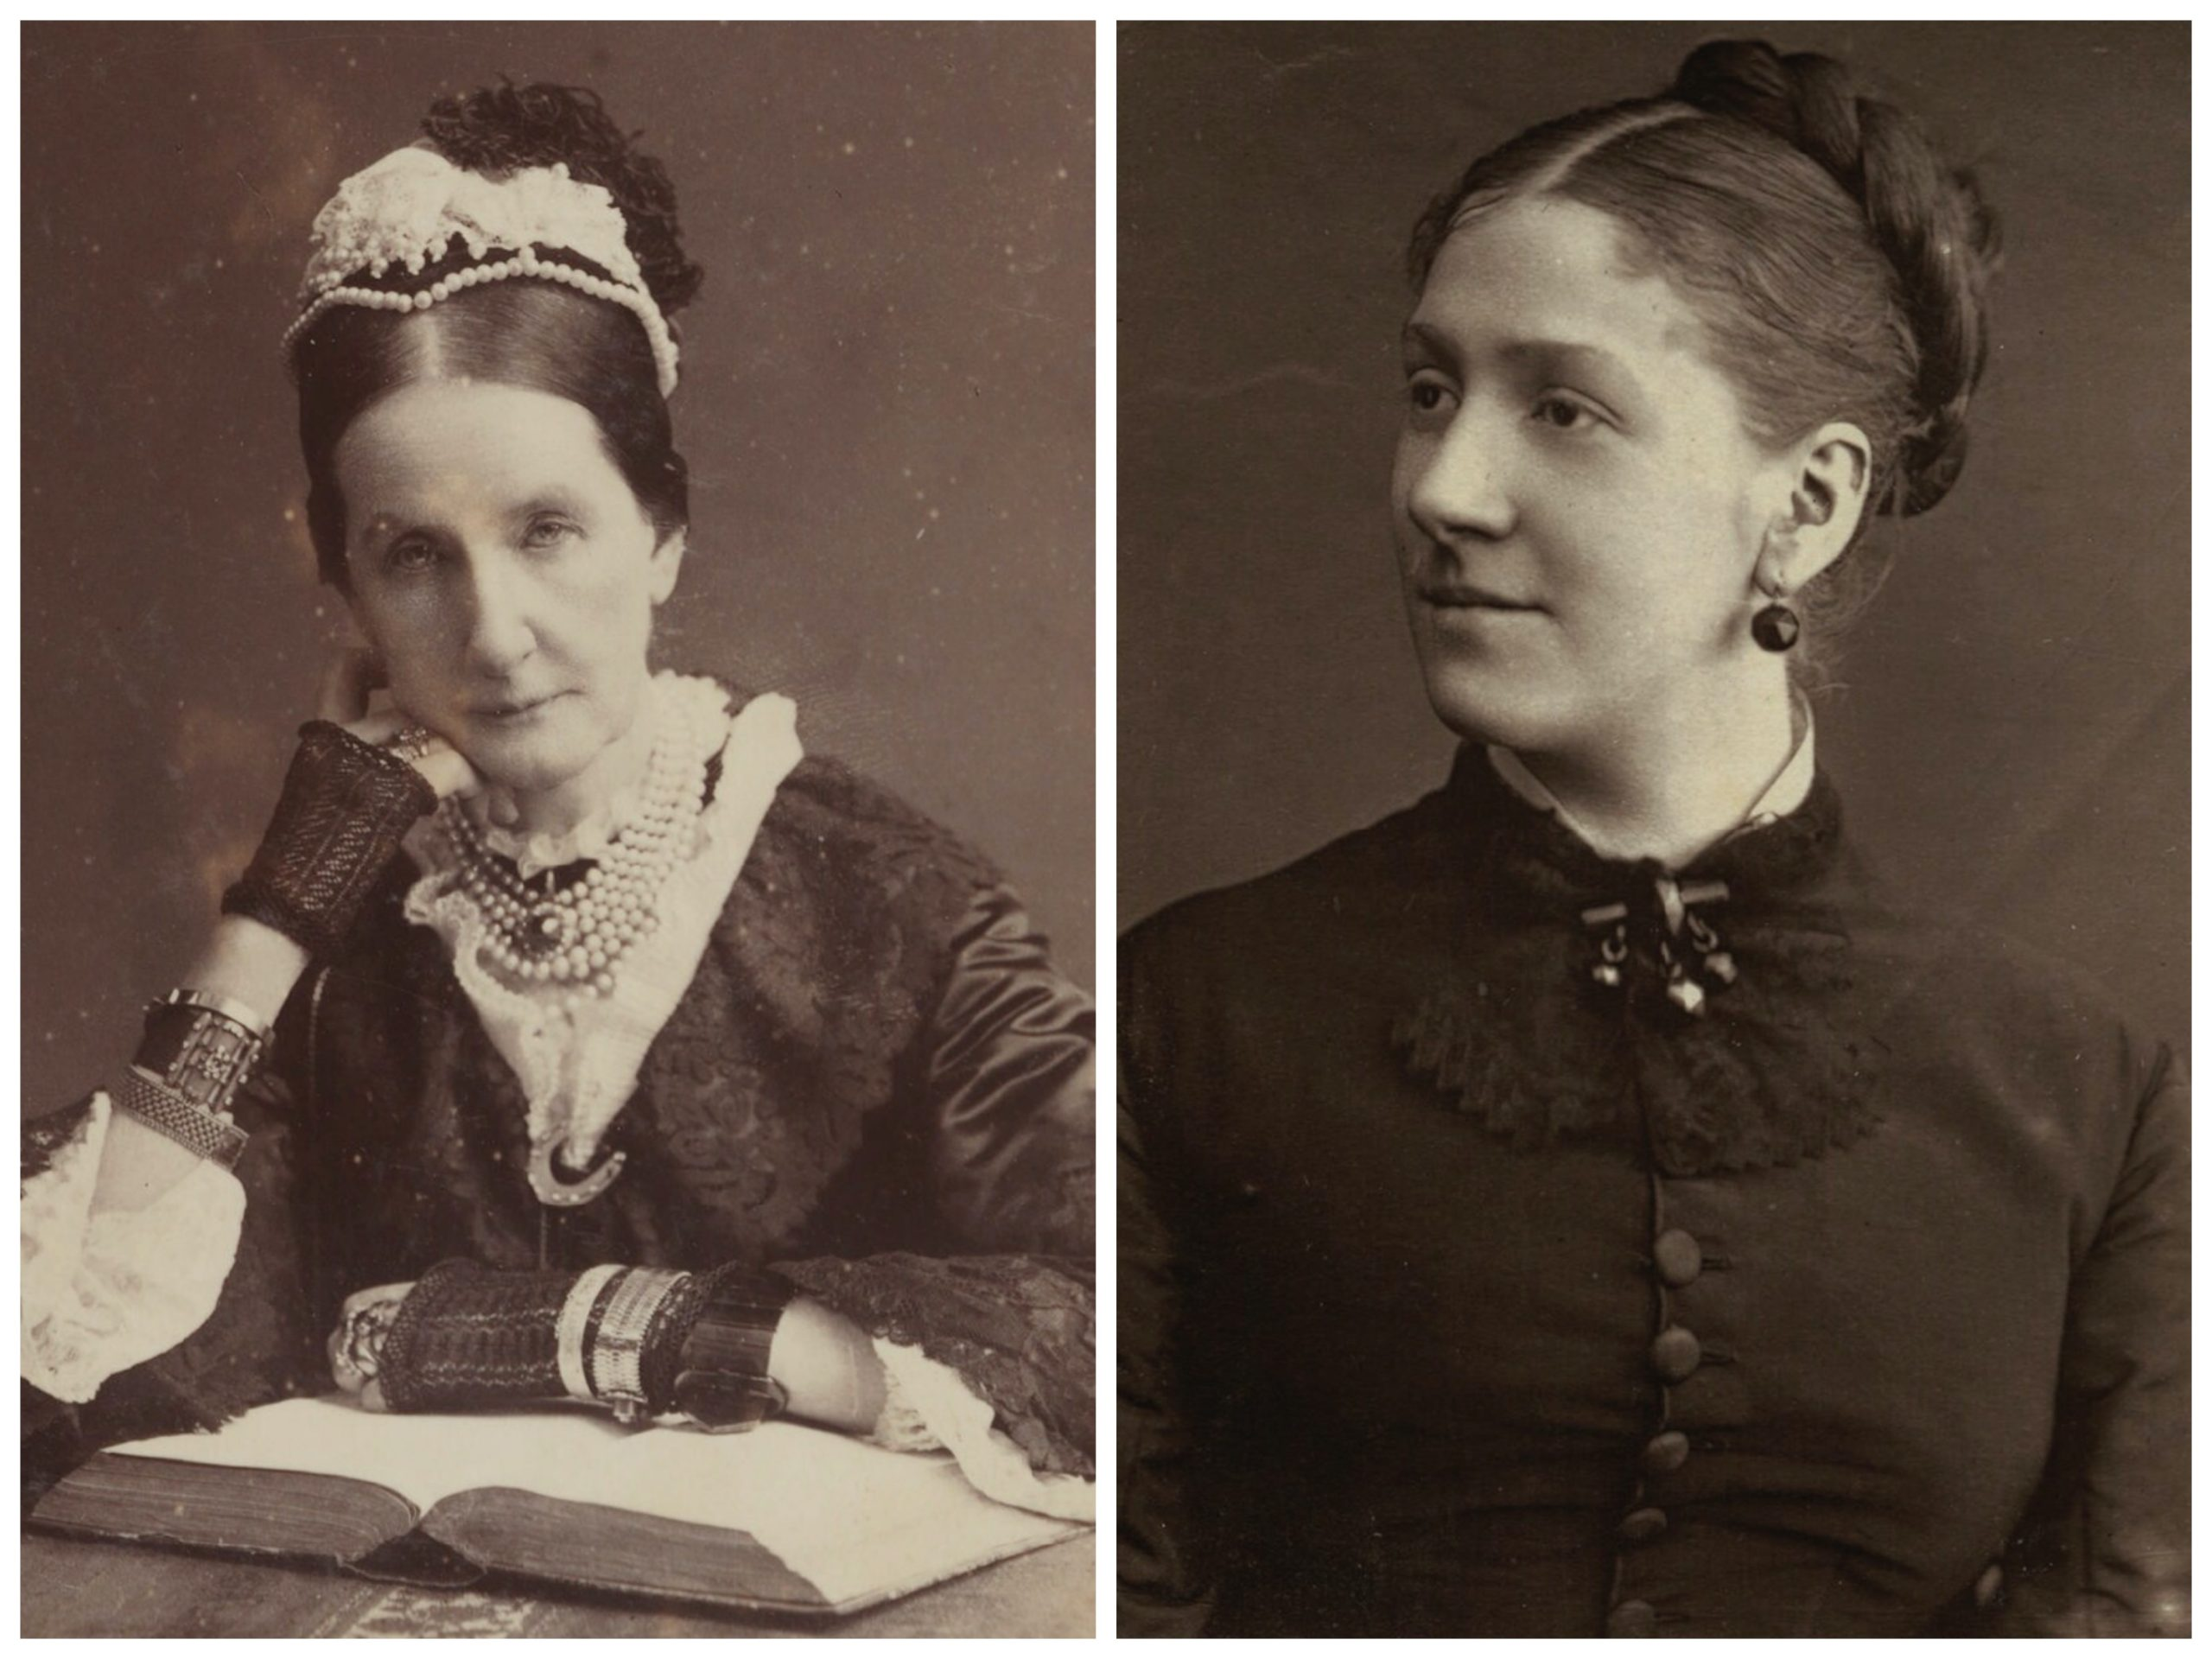 Baroness Burdett Coutts and Madge Kendal